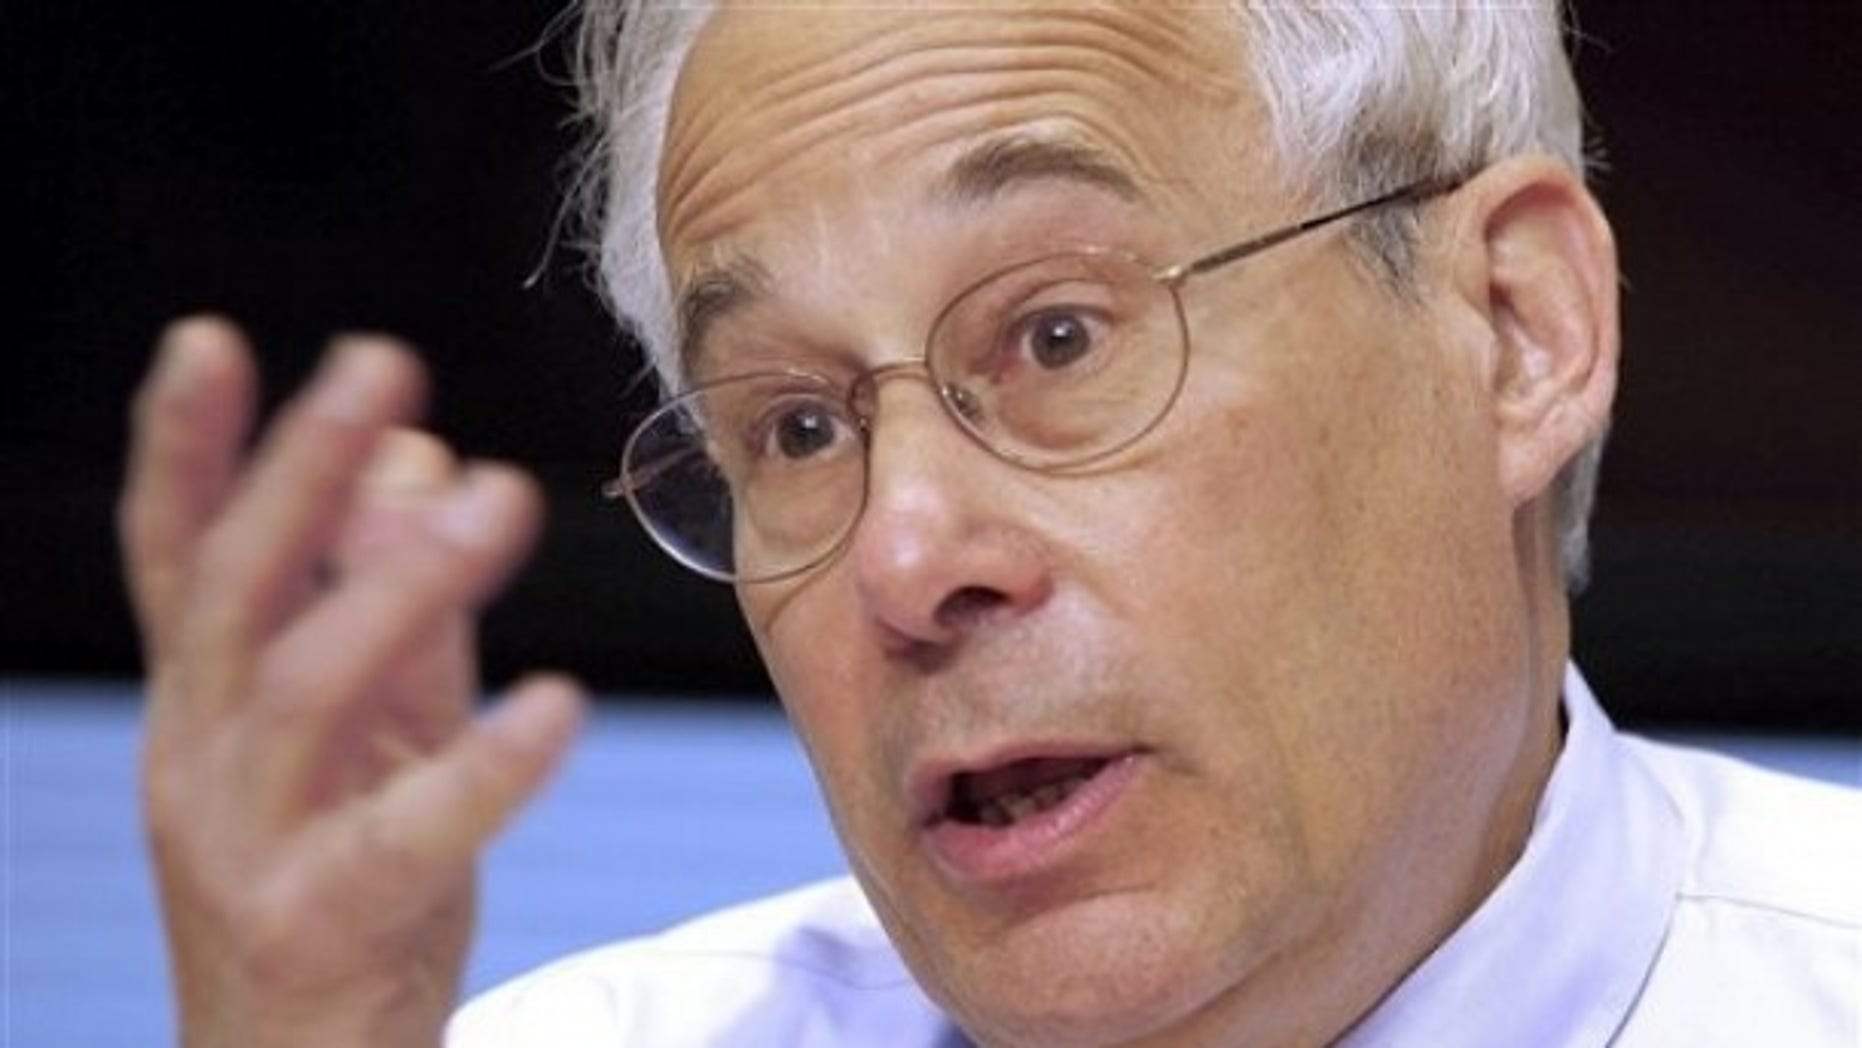 April 12, 2011: Medicare and Medicaid Administrator Donald Berwick gestures during an interview with The Associated Press in Washington.